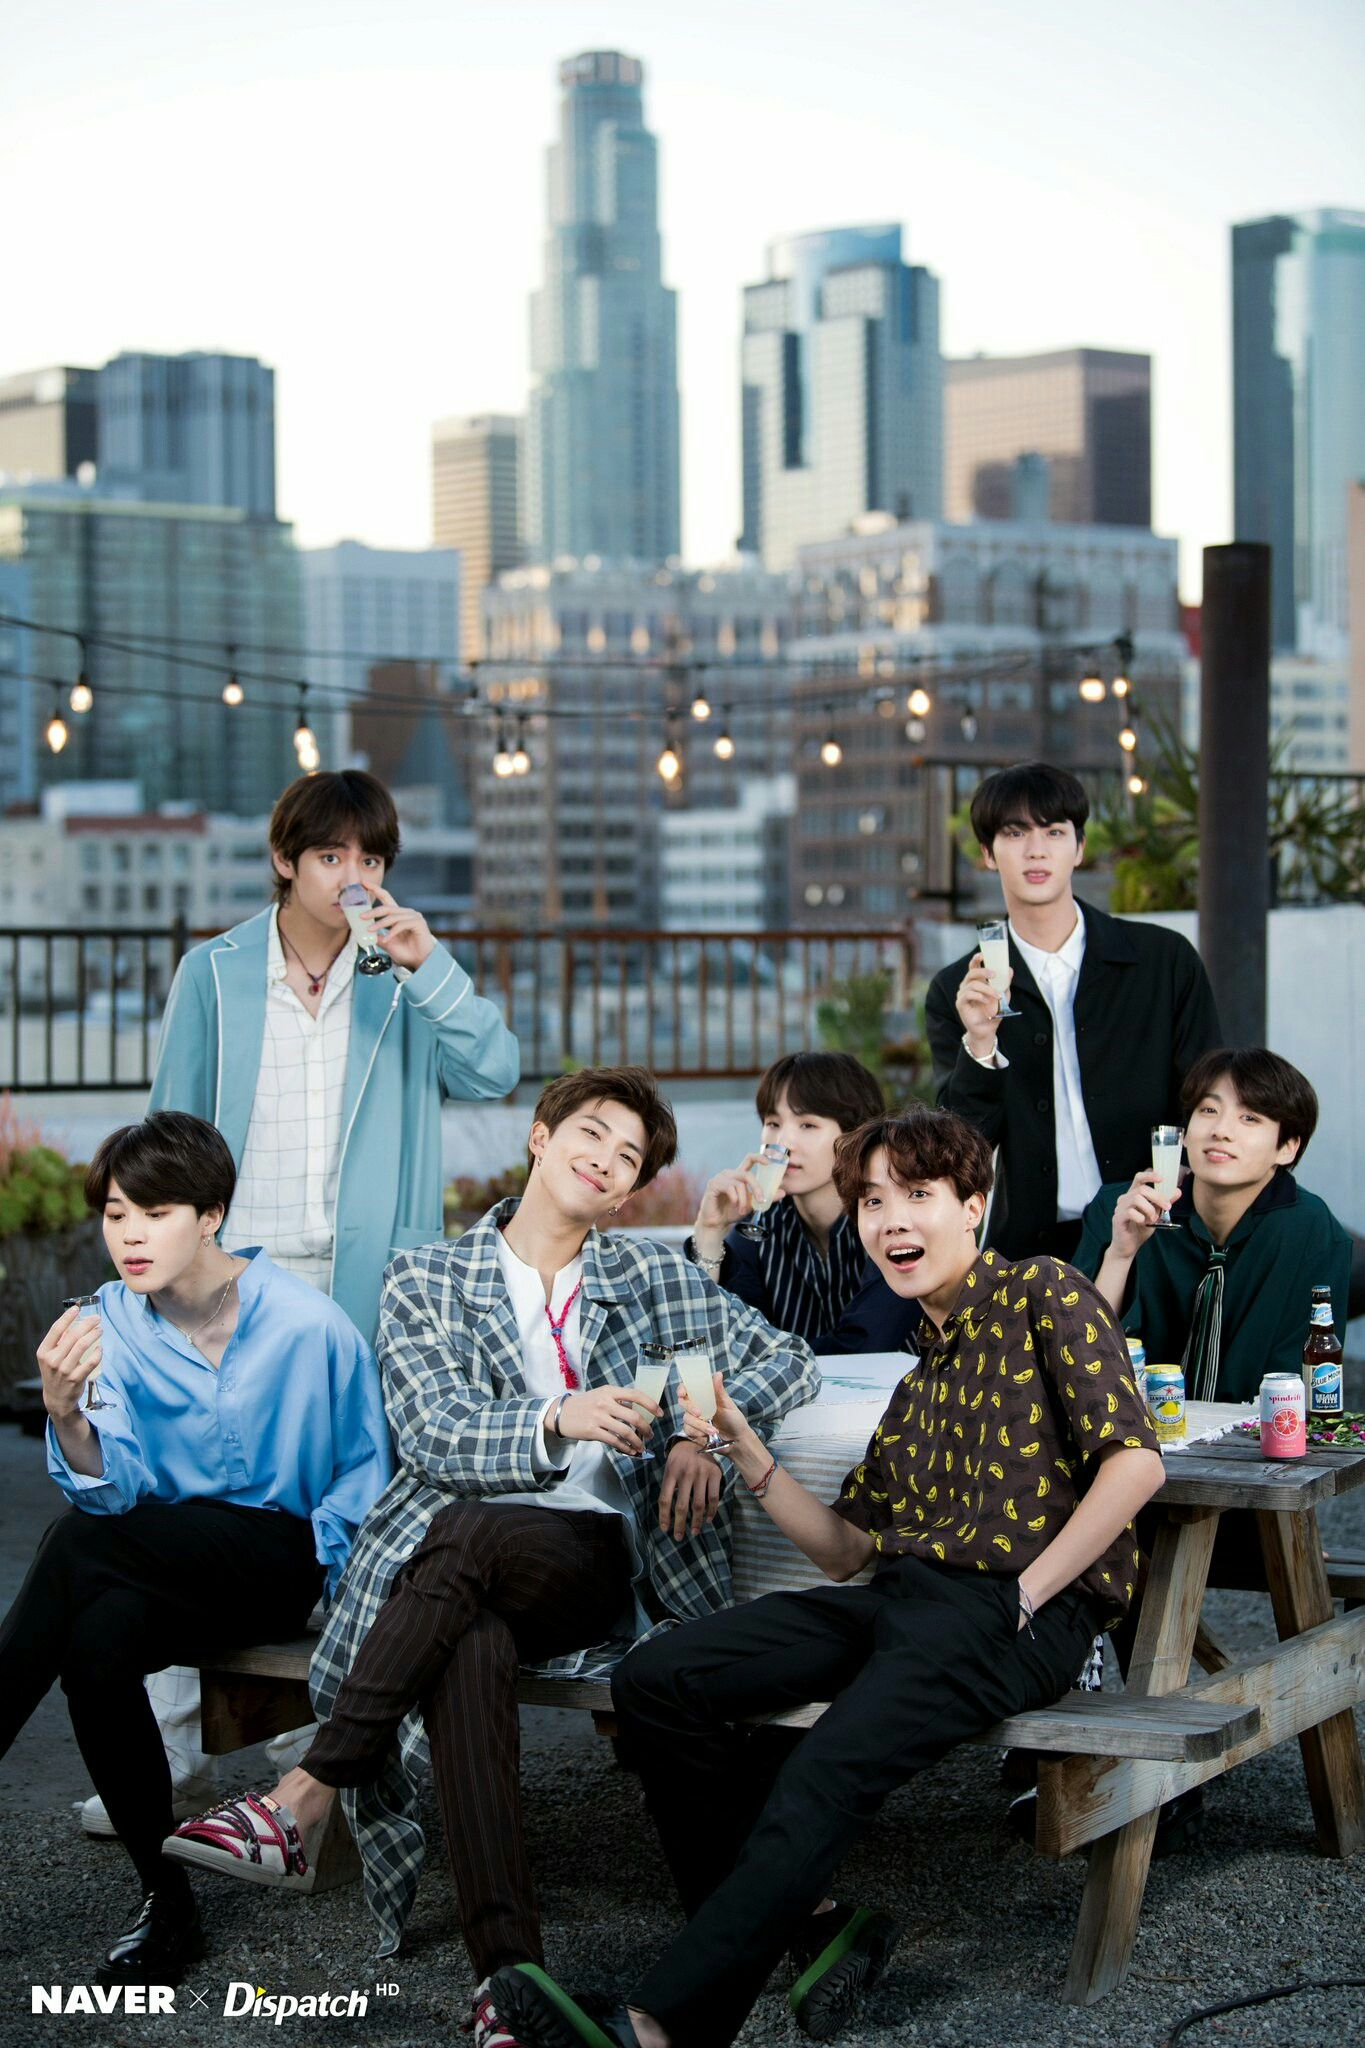 Naver X Dispatch Bts 5th Anniversary Party Bts 2018 Bts Imagens Bts